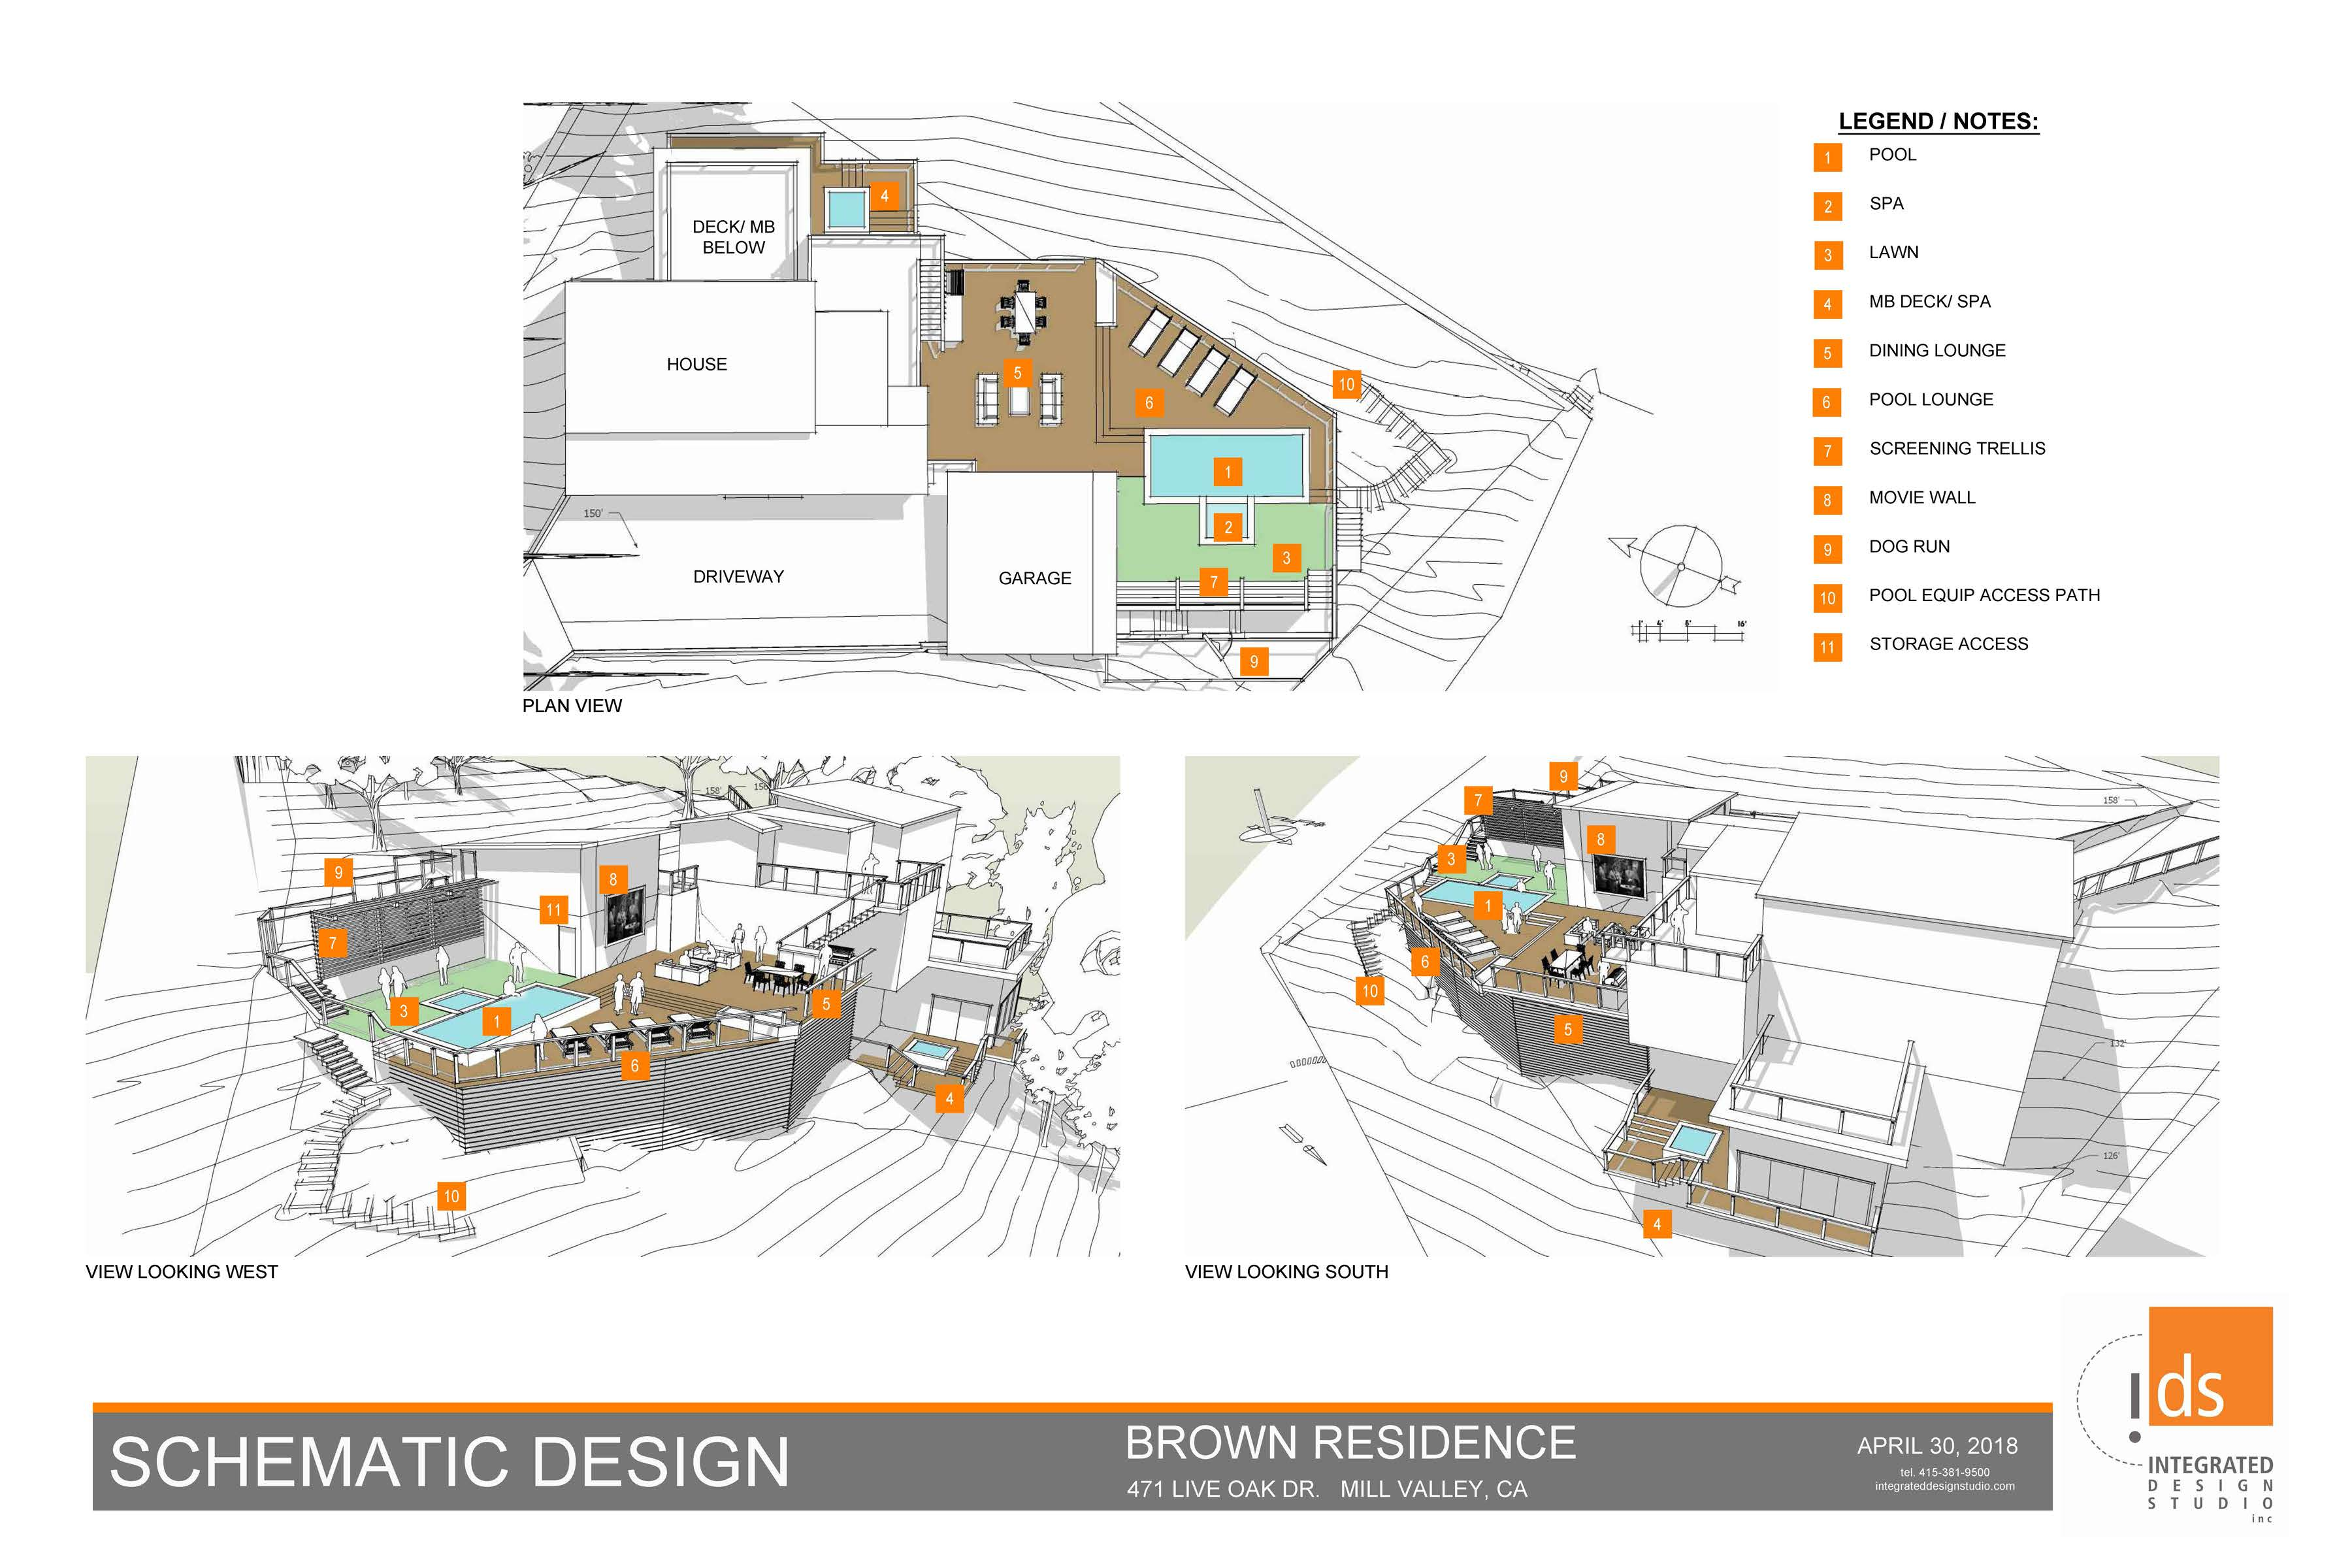 BROSchematic-Design-color-4-30-18.jpg #53